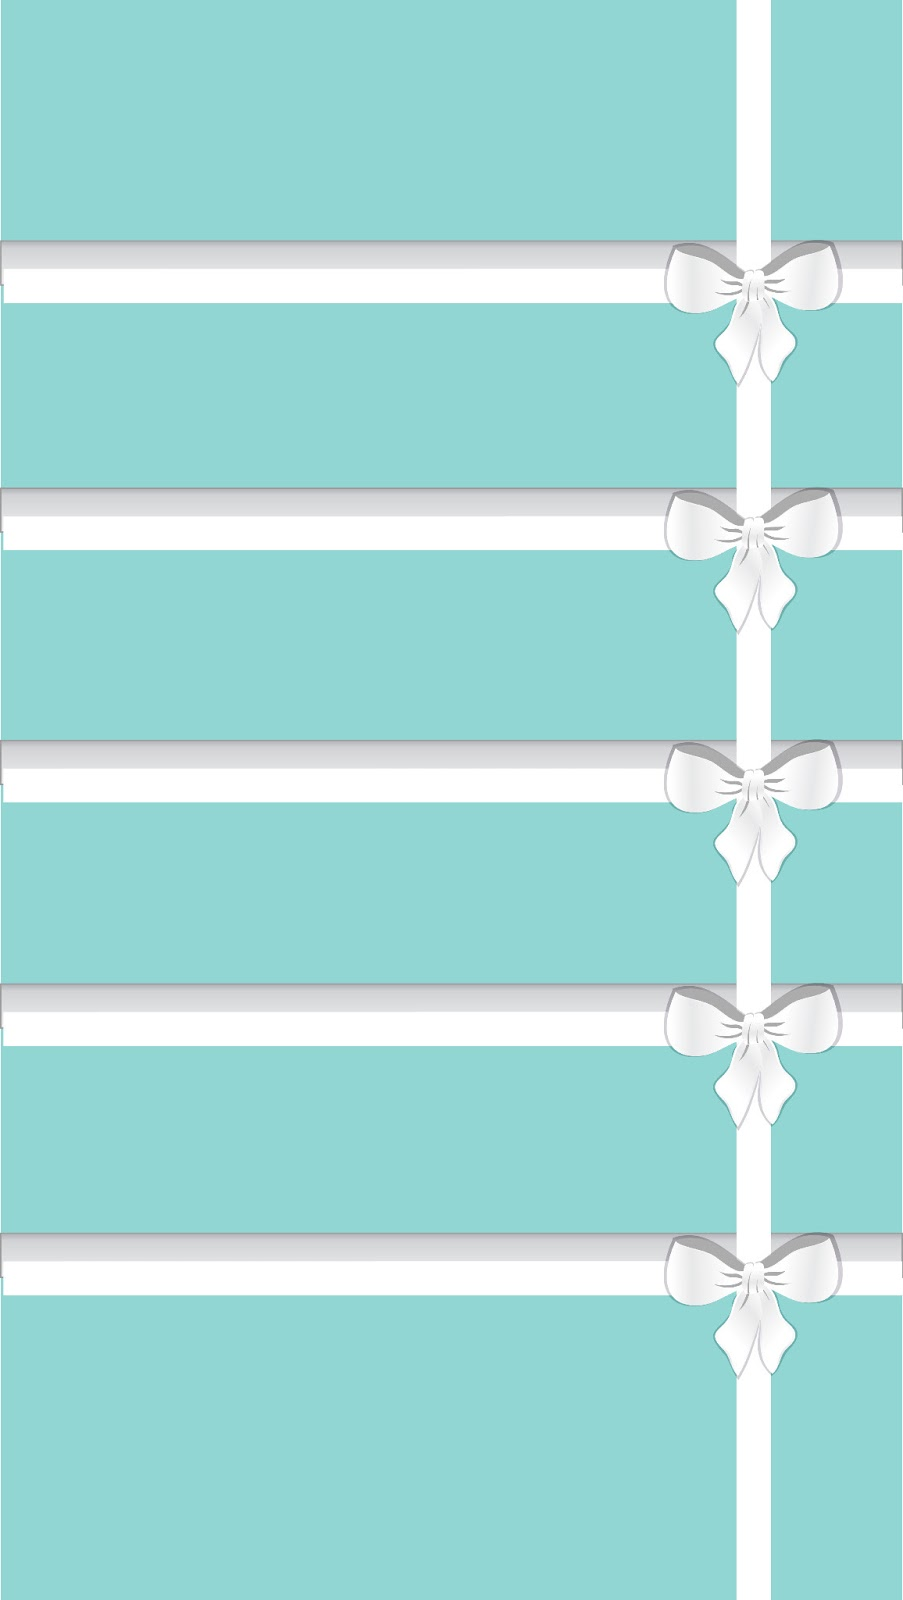 Tiffany & Co Wallpapers